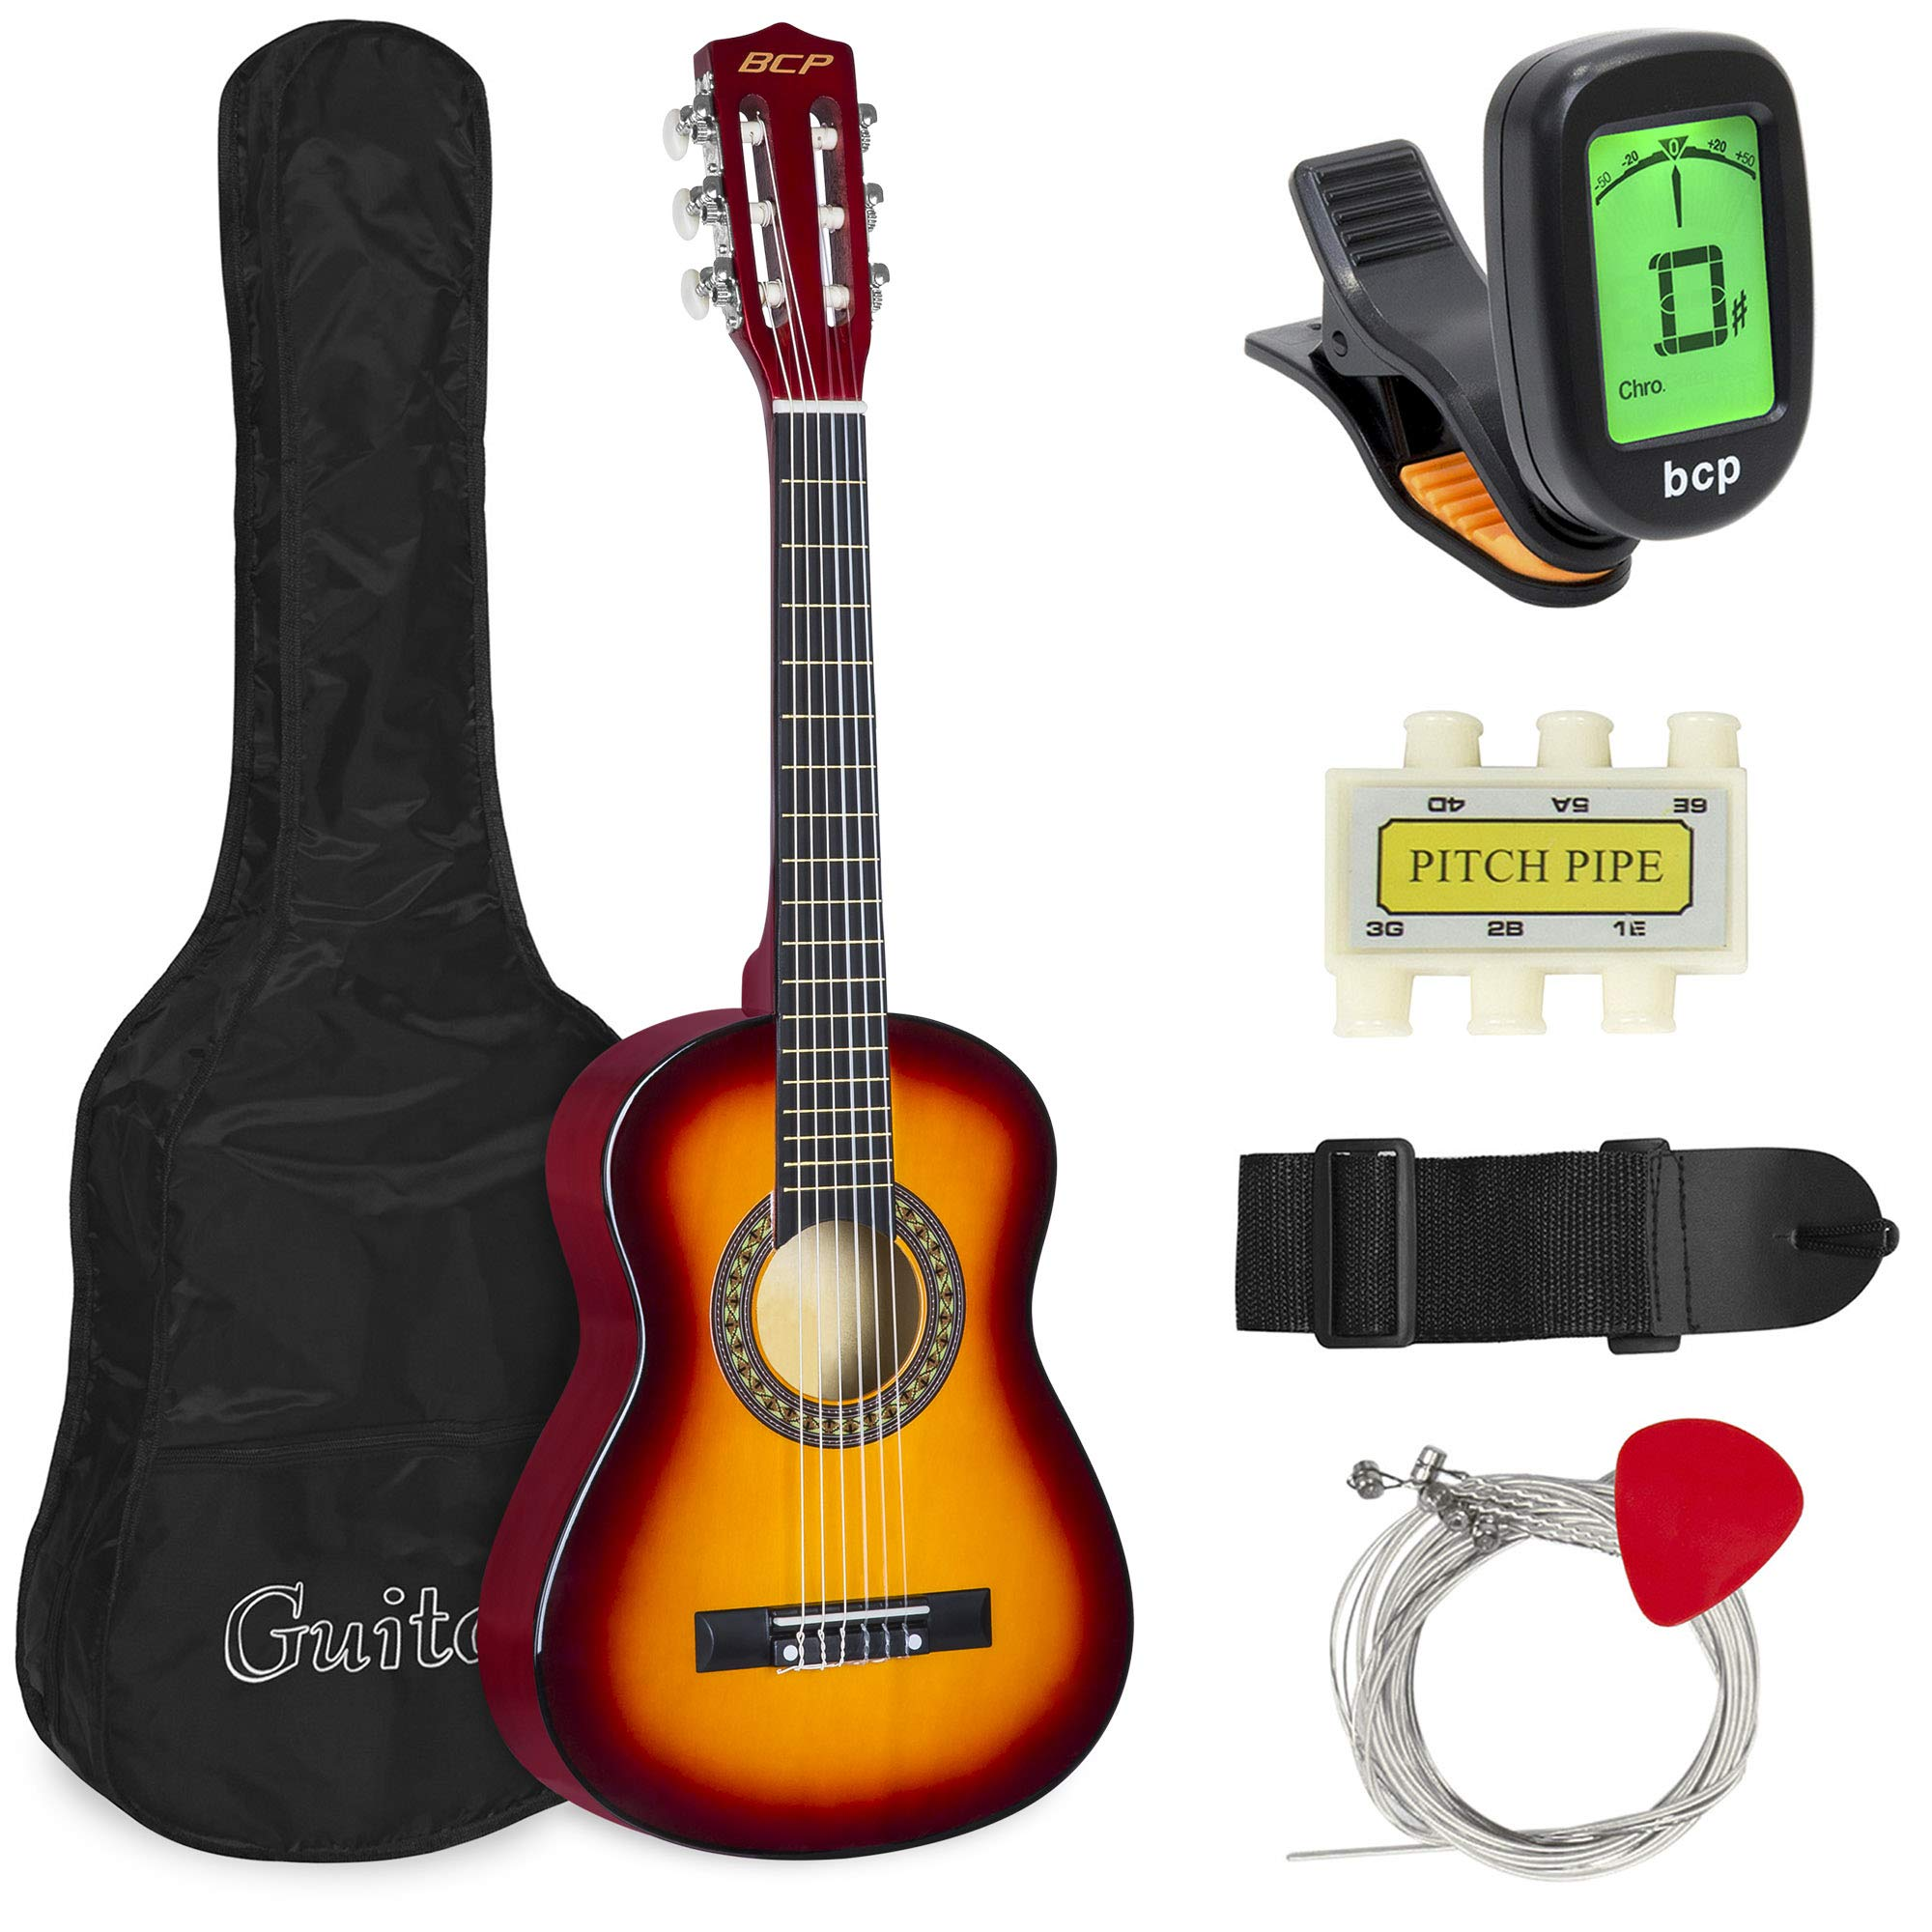 Best Choice Products 30in Kids Classical Acoustic Guitar Complete Beginners Kit w/Carrying Bag, Picks, E-Tuner, Strap (Sunburst) by Best Choice Products